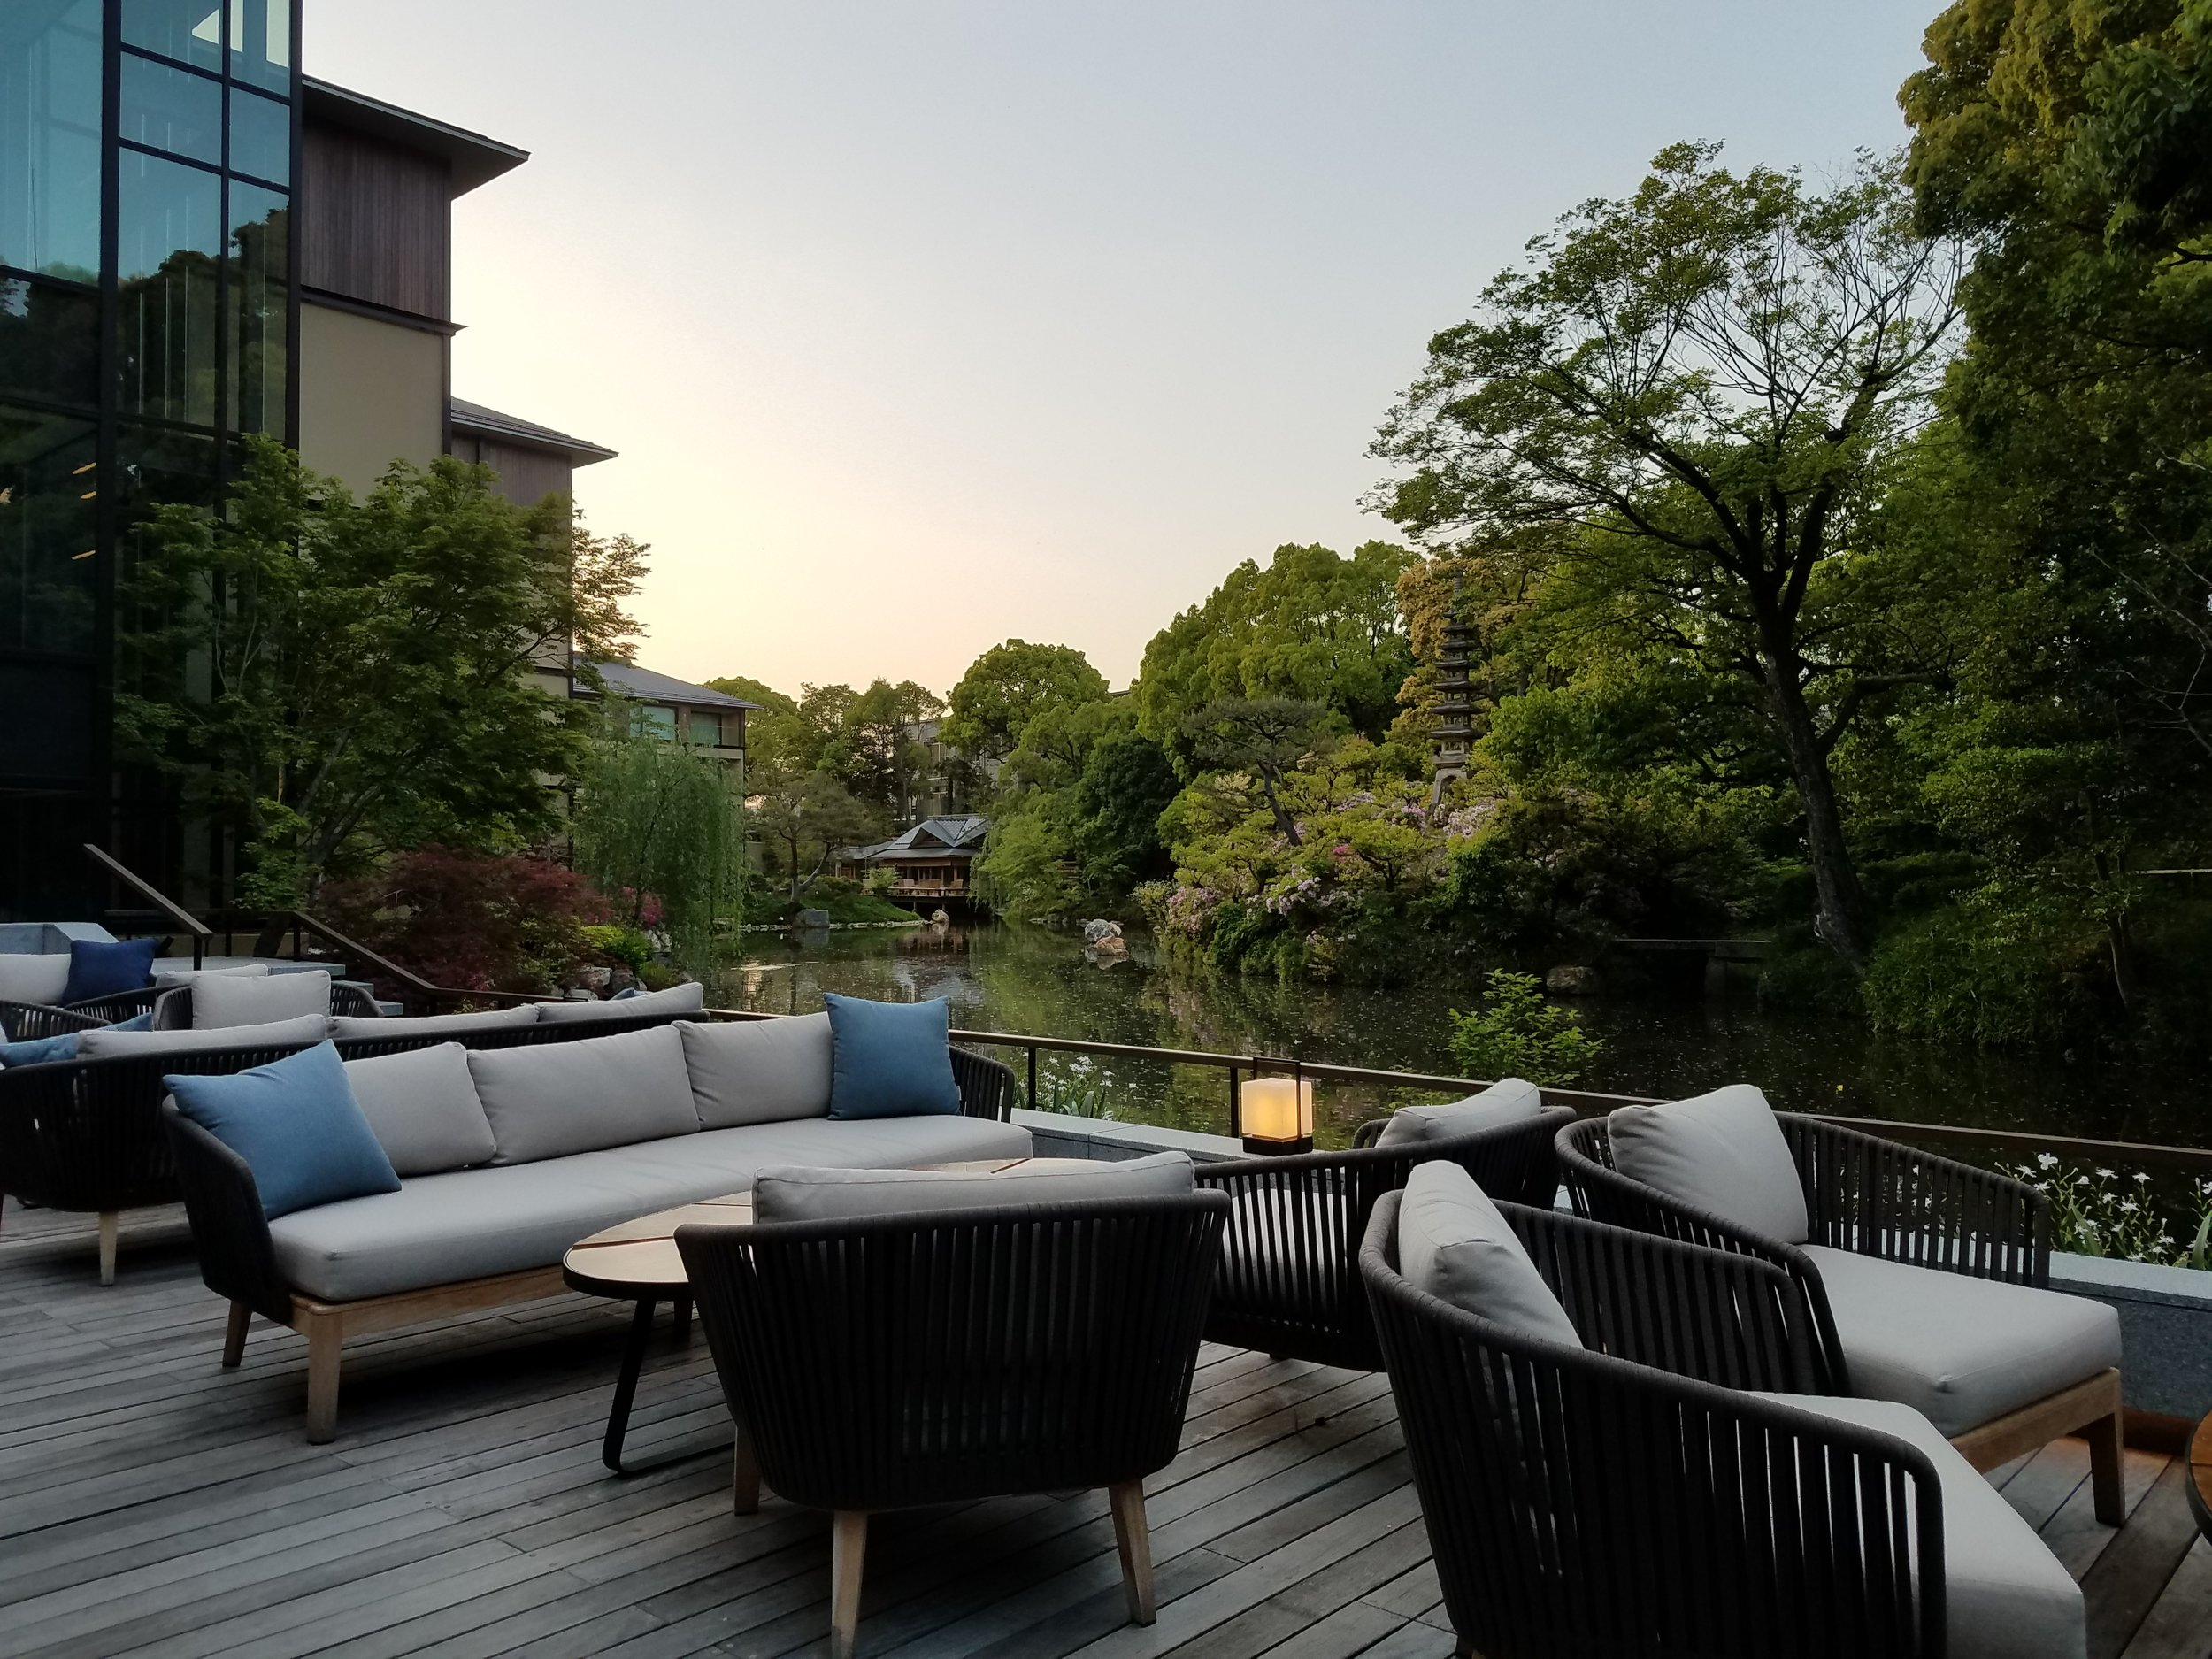 The private garden of Brasserie Restaurant, Four Seasons Hotel - Kyoto